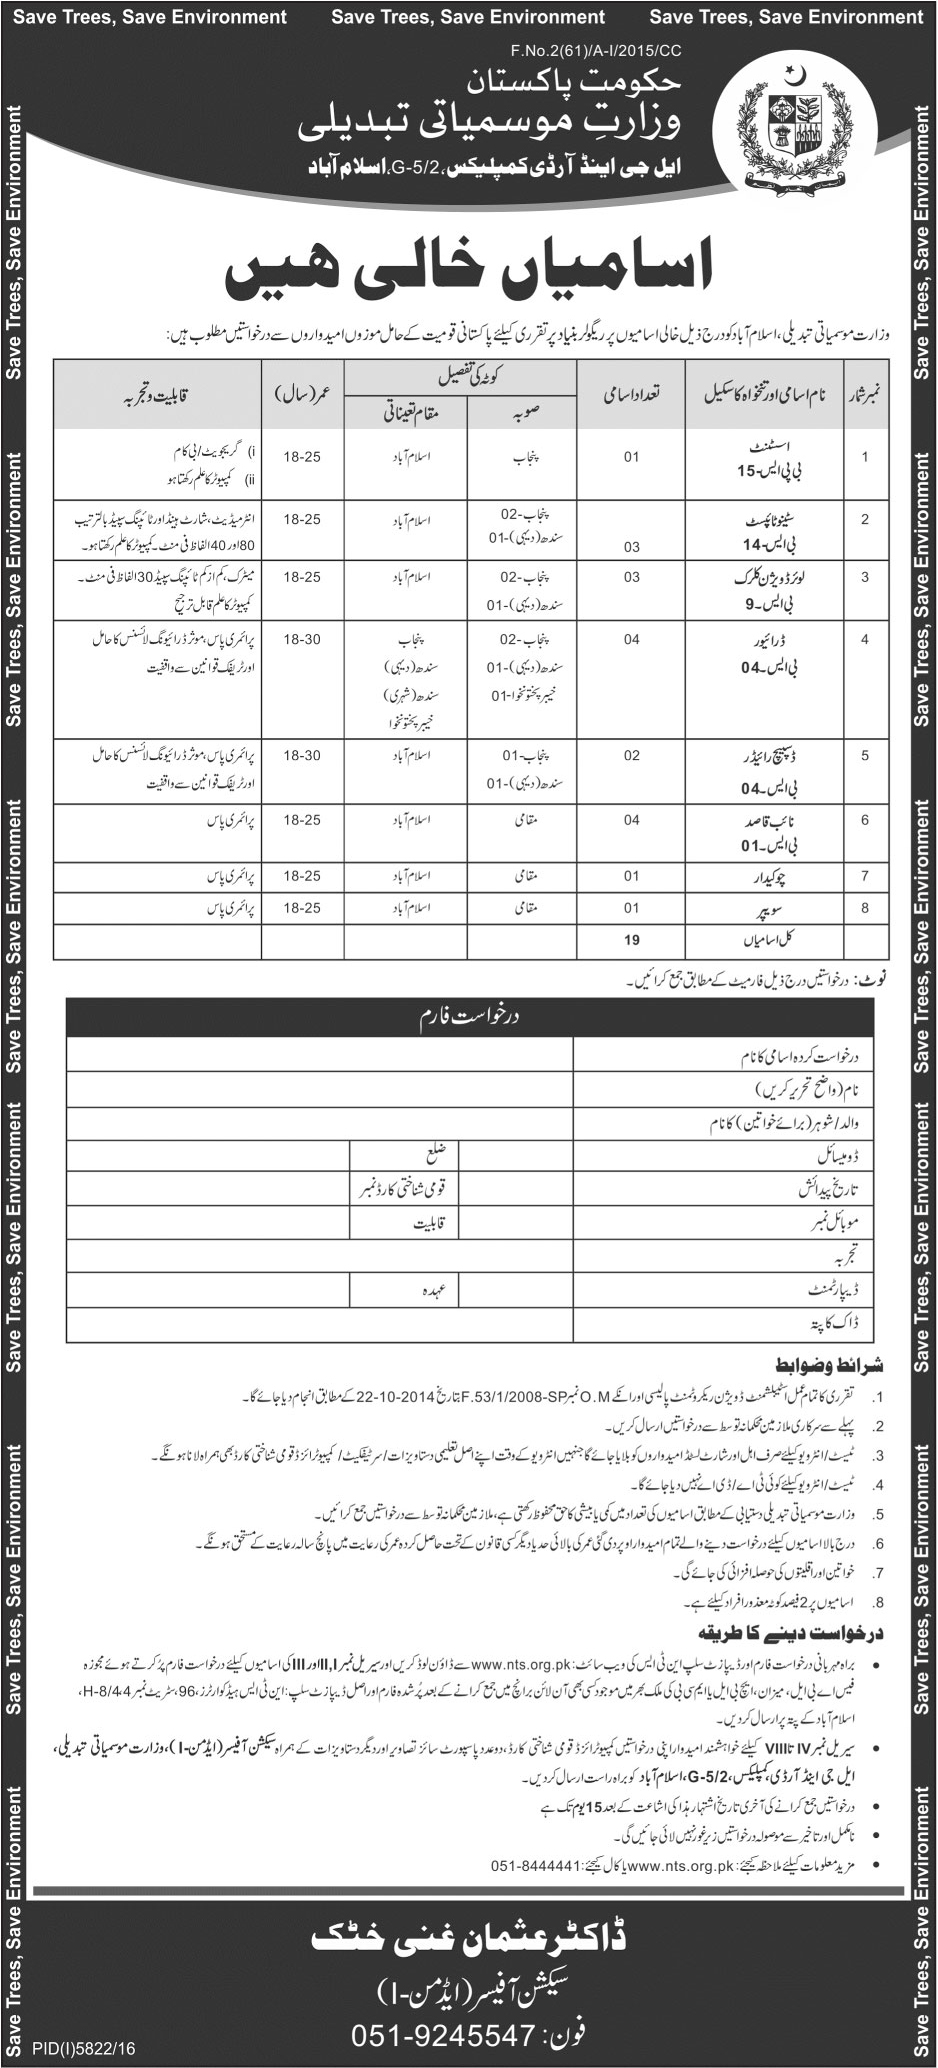 Ministry Of Climate Change Pakistan MOCC Jobs 2018